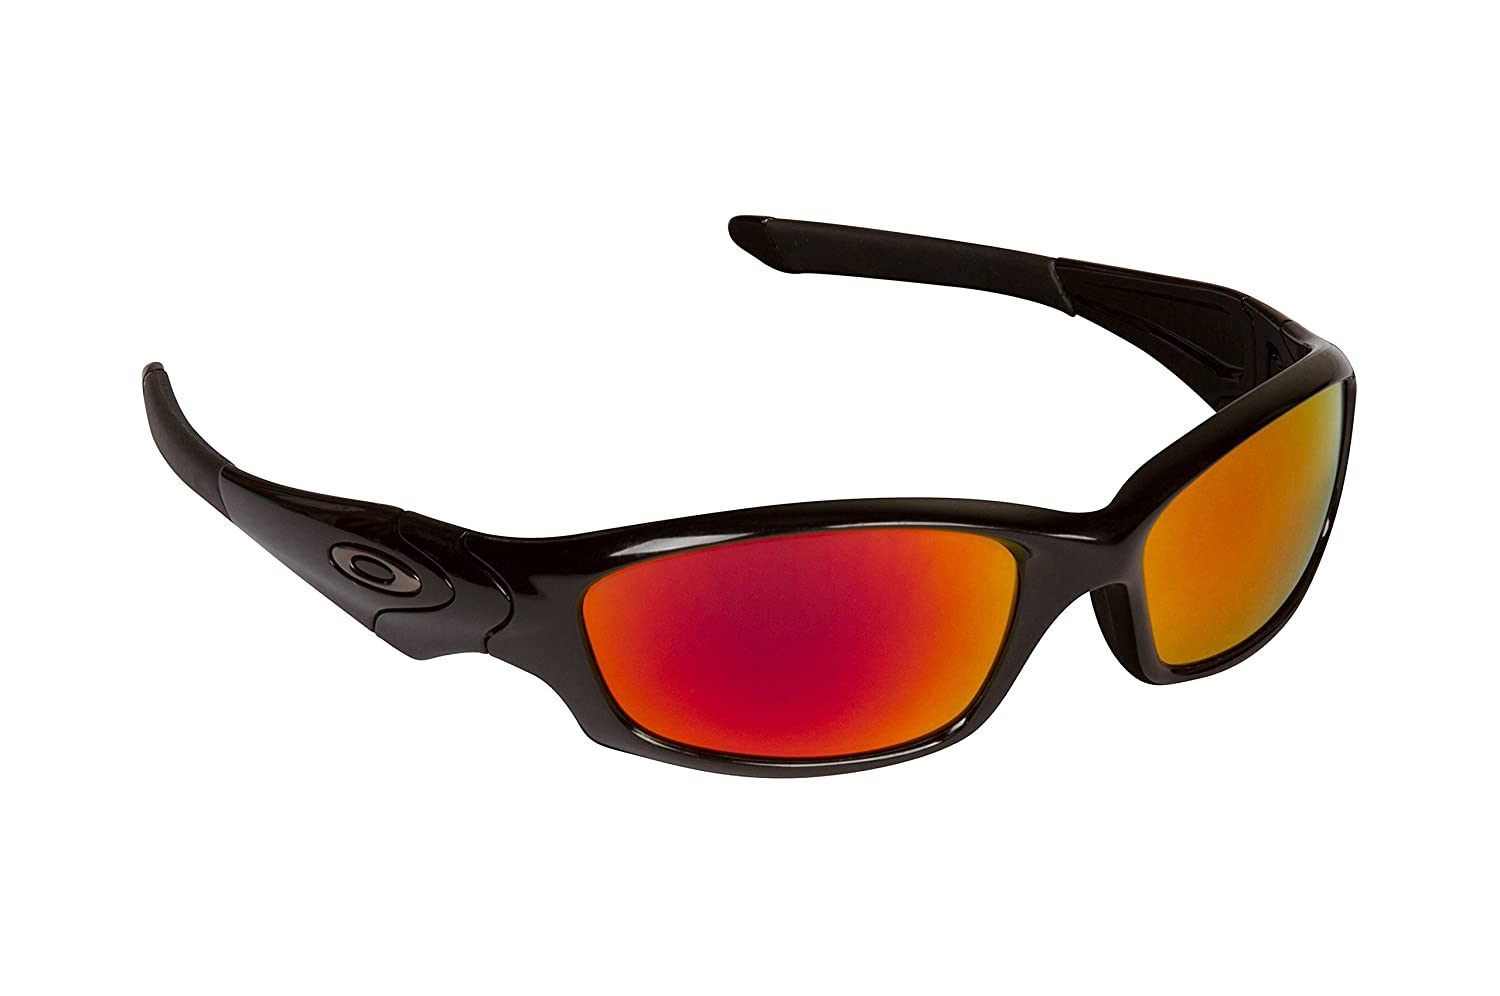 Amazon.com: New Lentes de repuesto para Oakley Straight ...